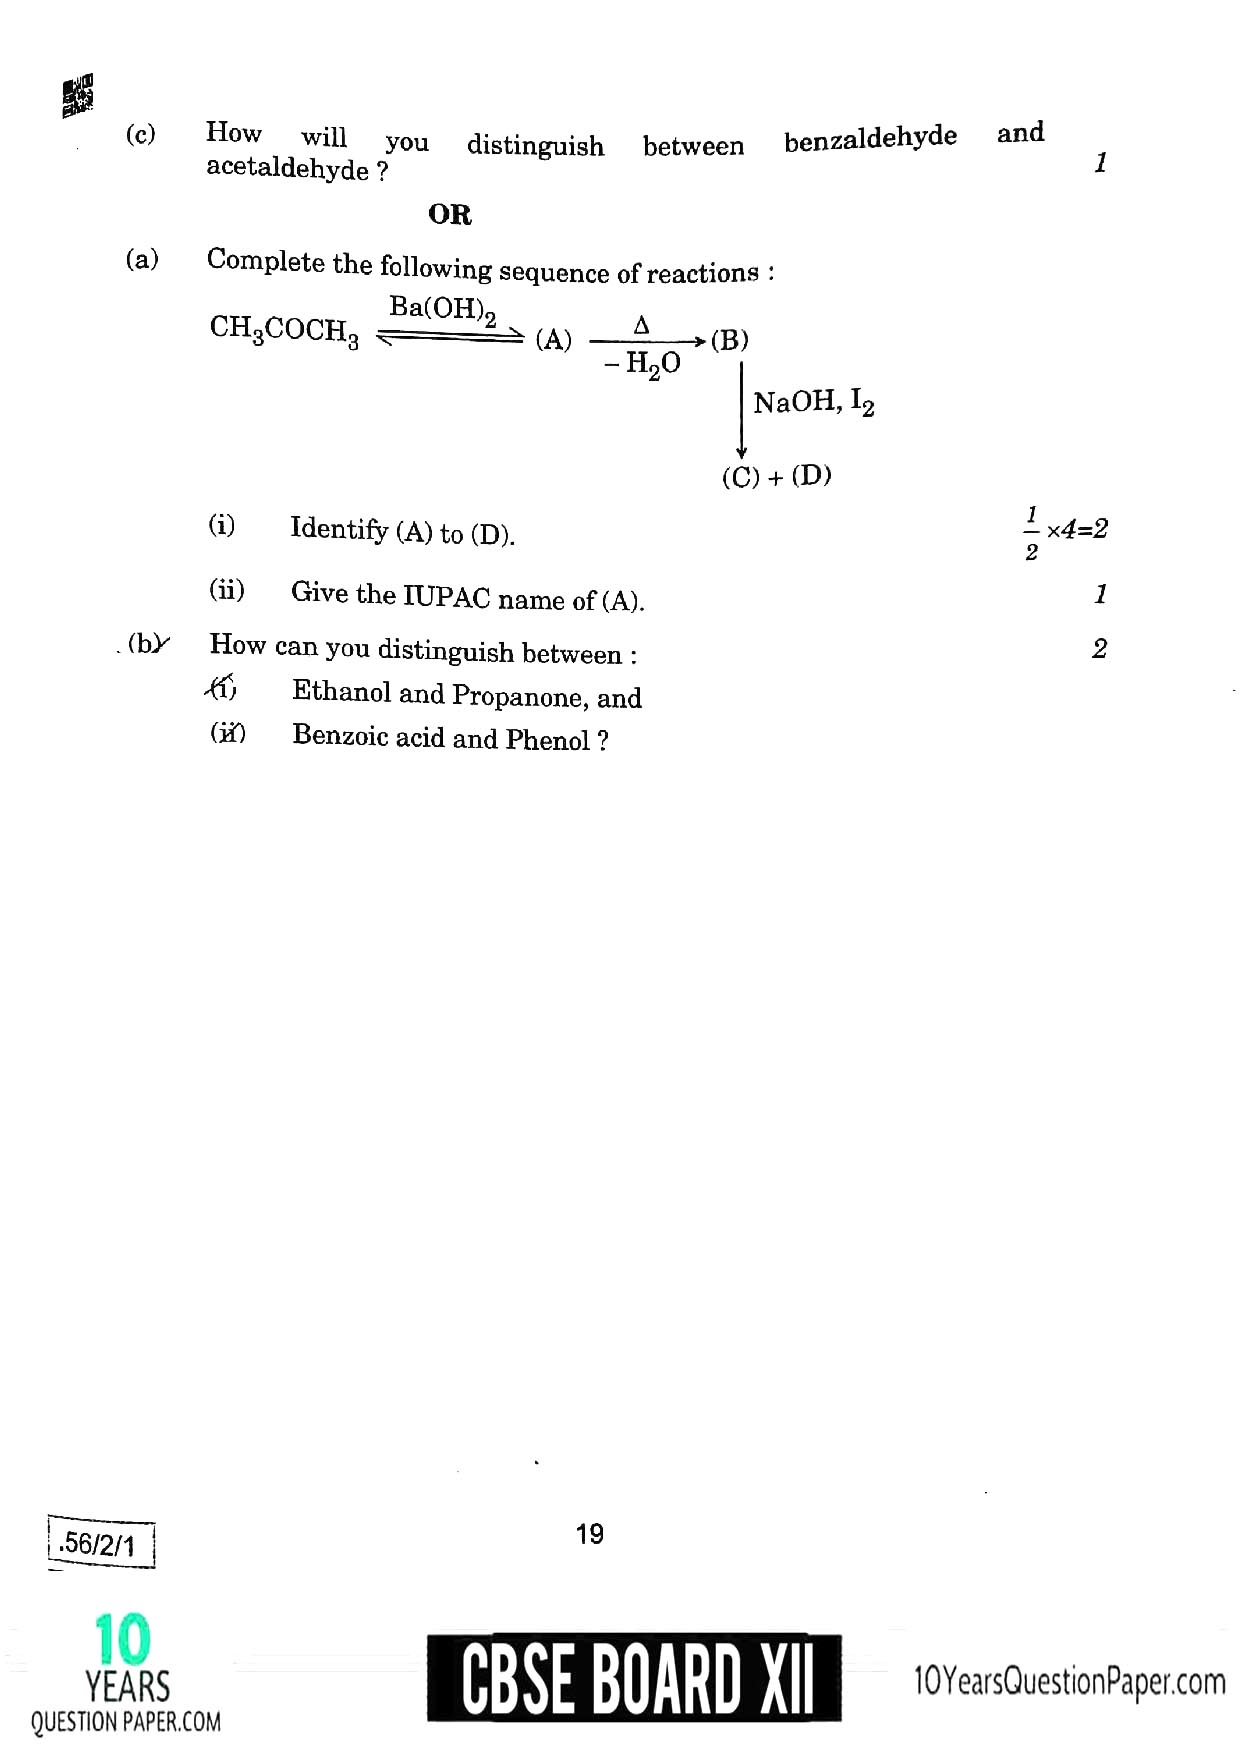 CBSE Class 12 Chemistry 2020 Question Paper 10